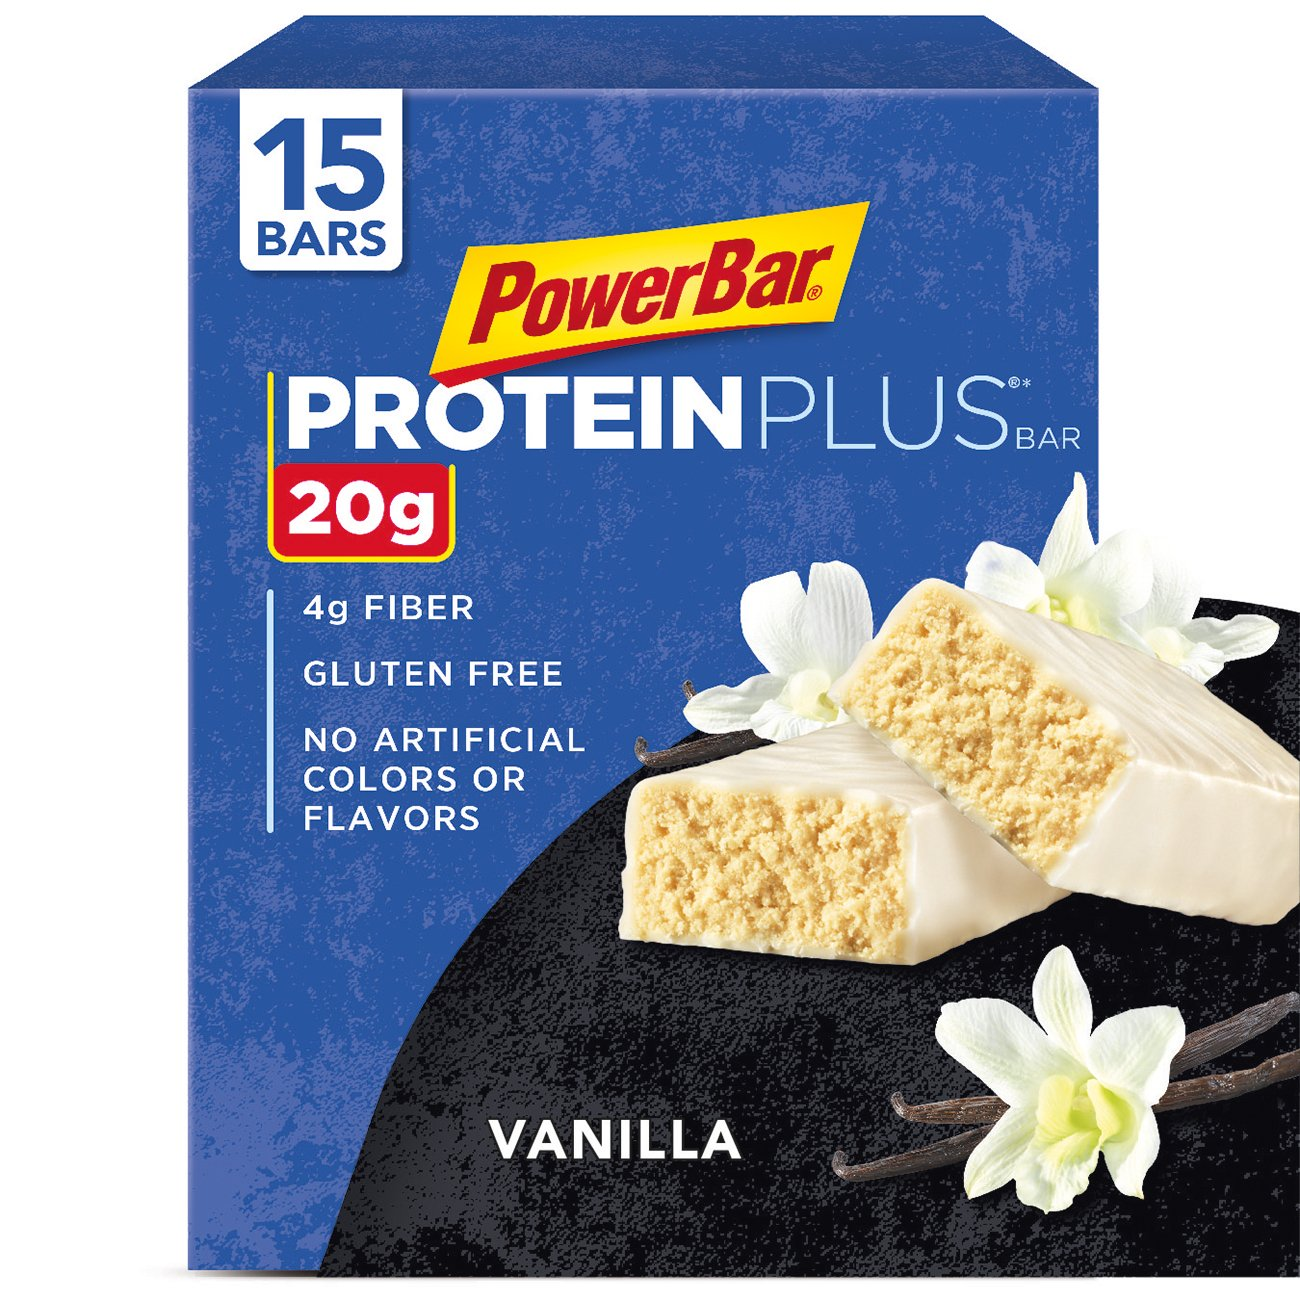 PowerBar Protein Plus Bar, Vanilla, 2.12 oz Bar, (15 Count)